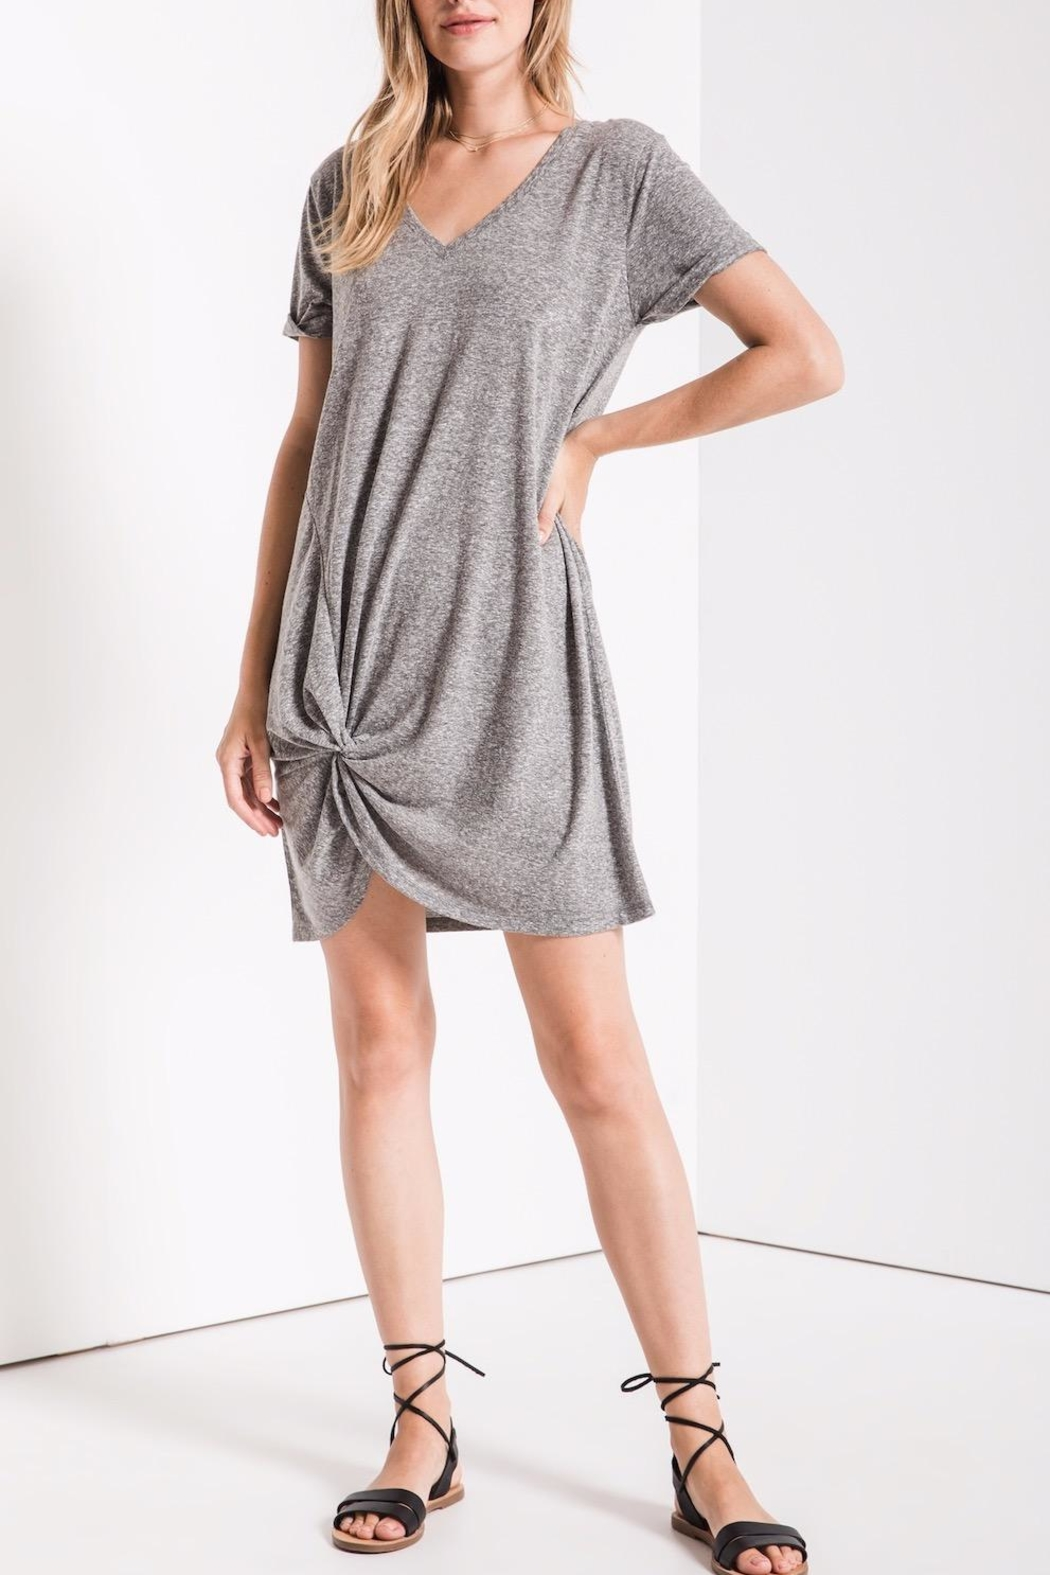 z supply Side Knot Dress - Front Cropped Image